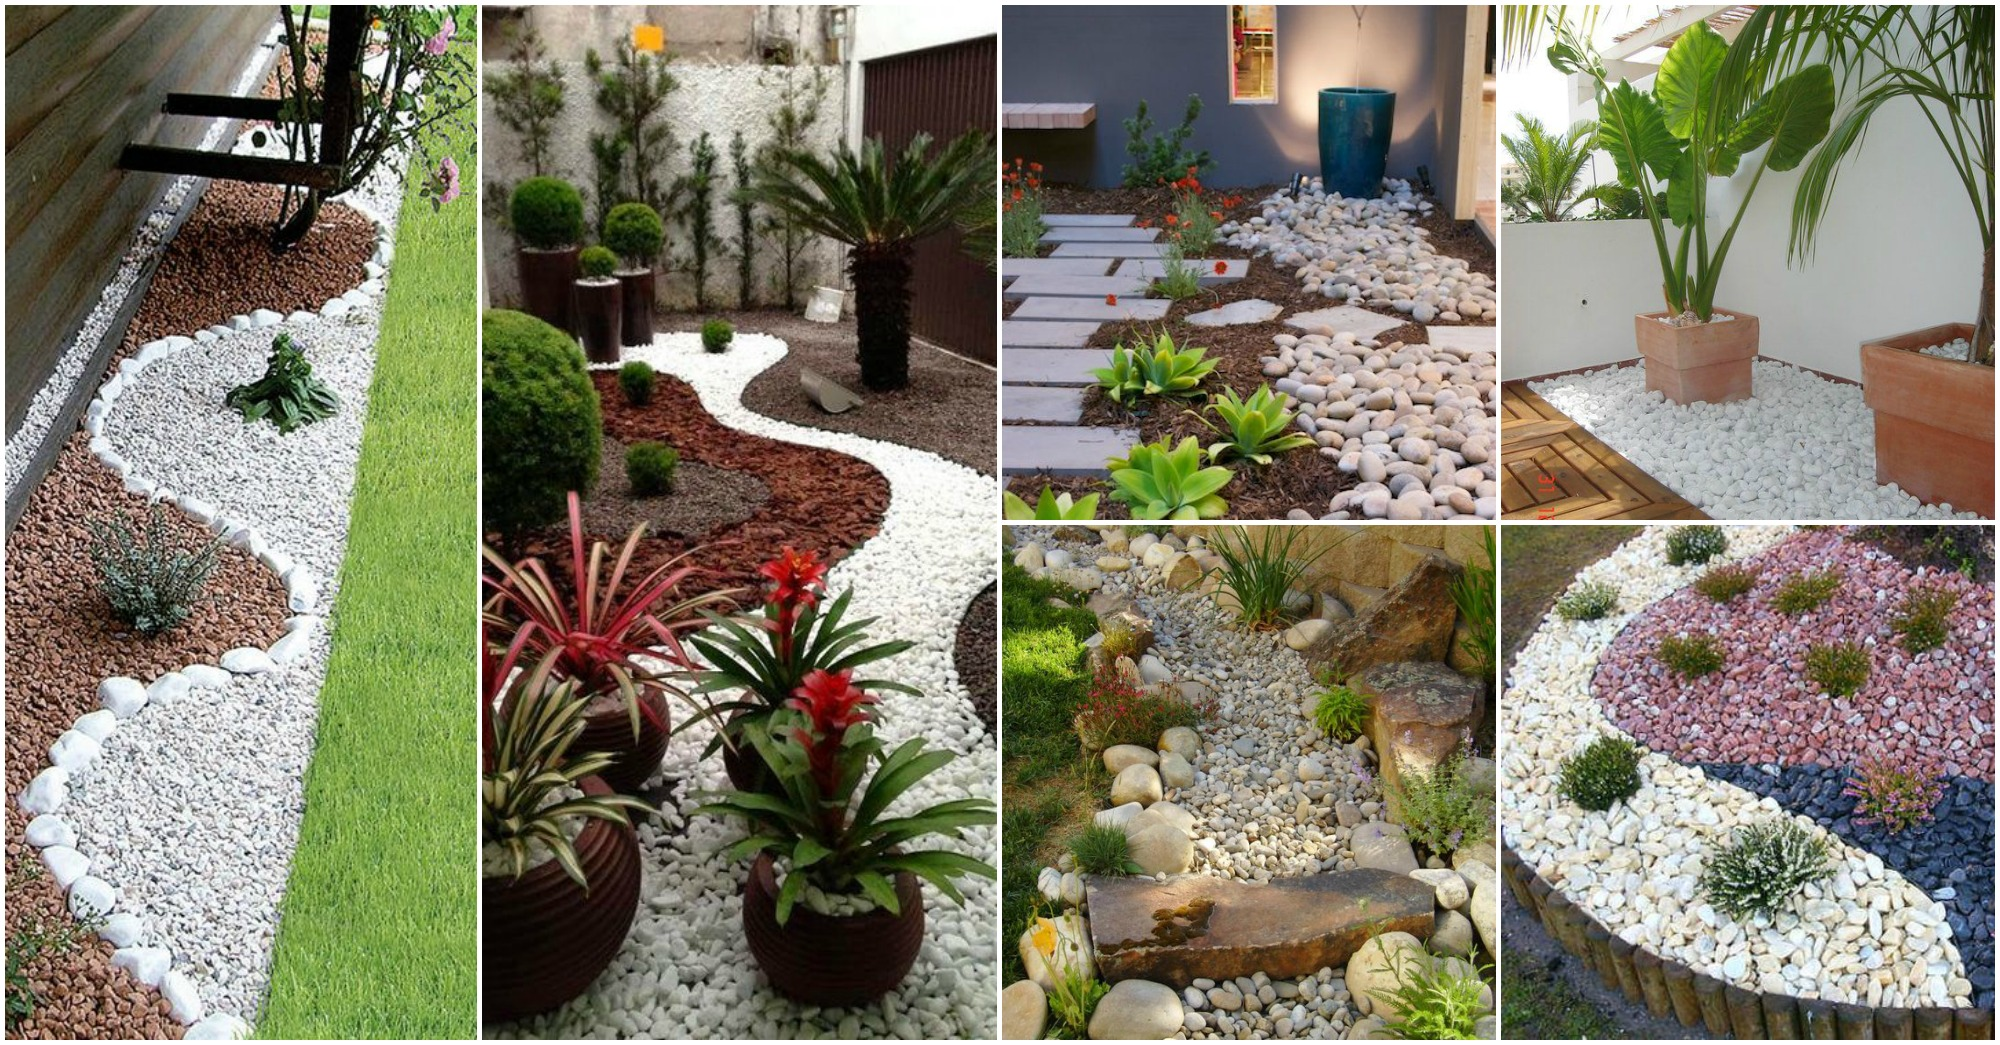 20 hermosas ideas para decorar tu jard n con piedras for Ideas para decorar patios y jardines